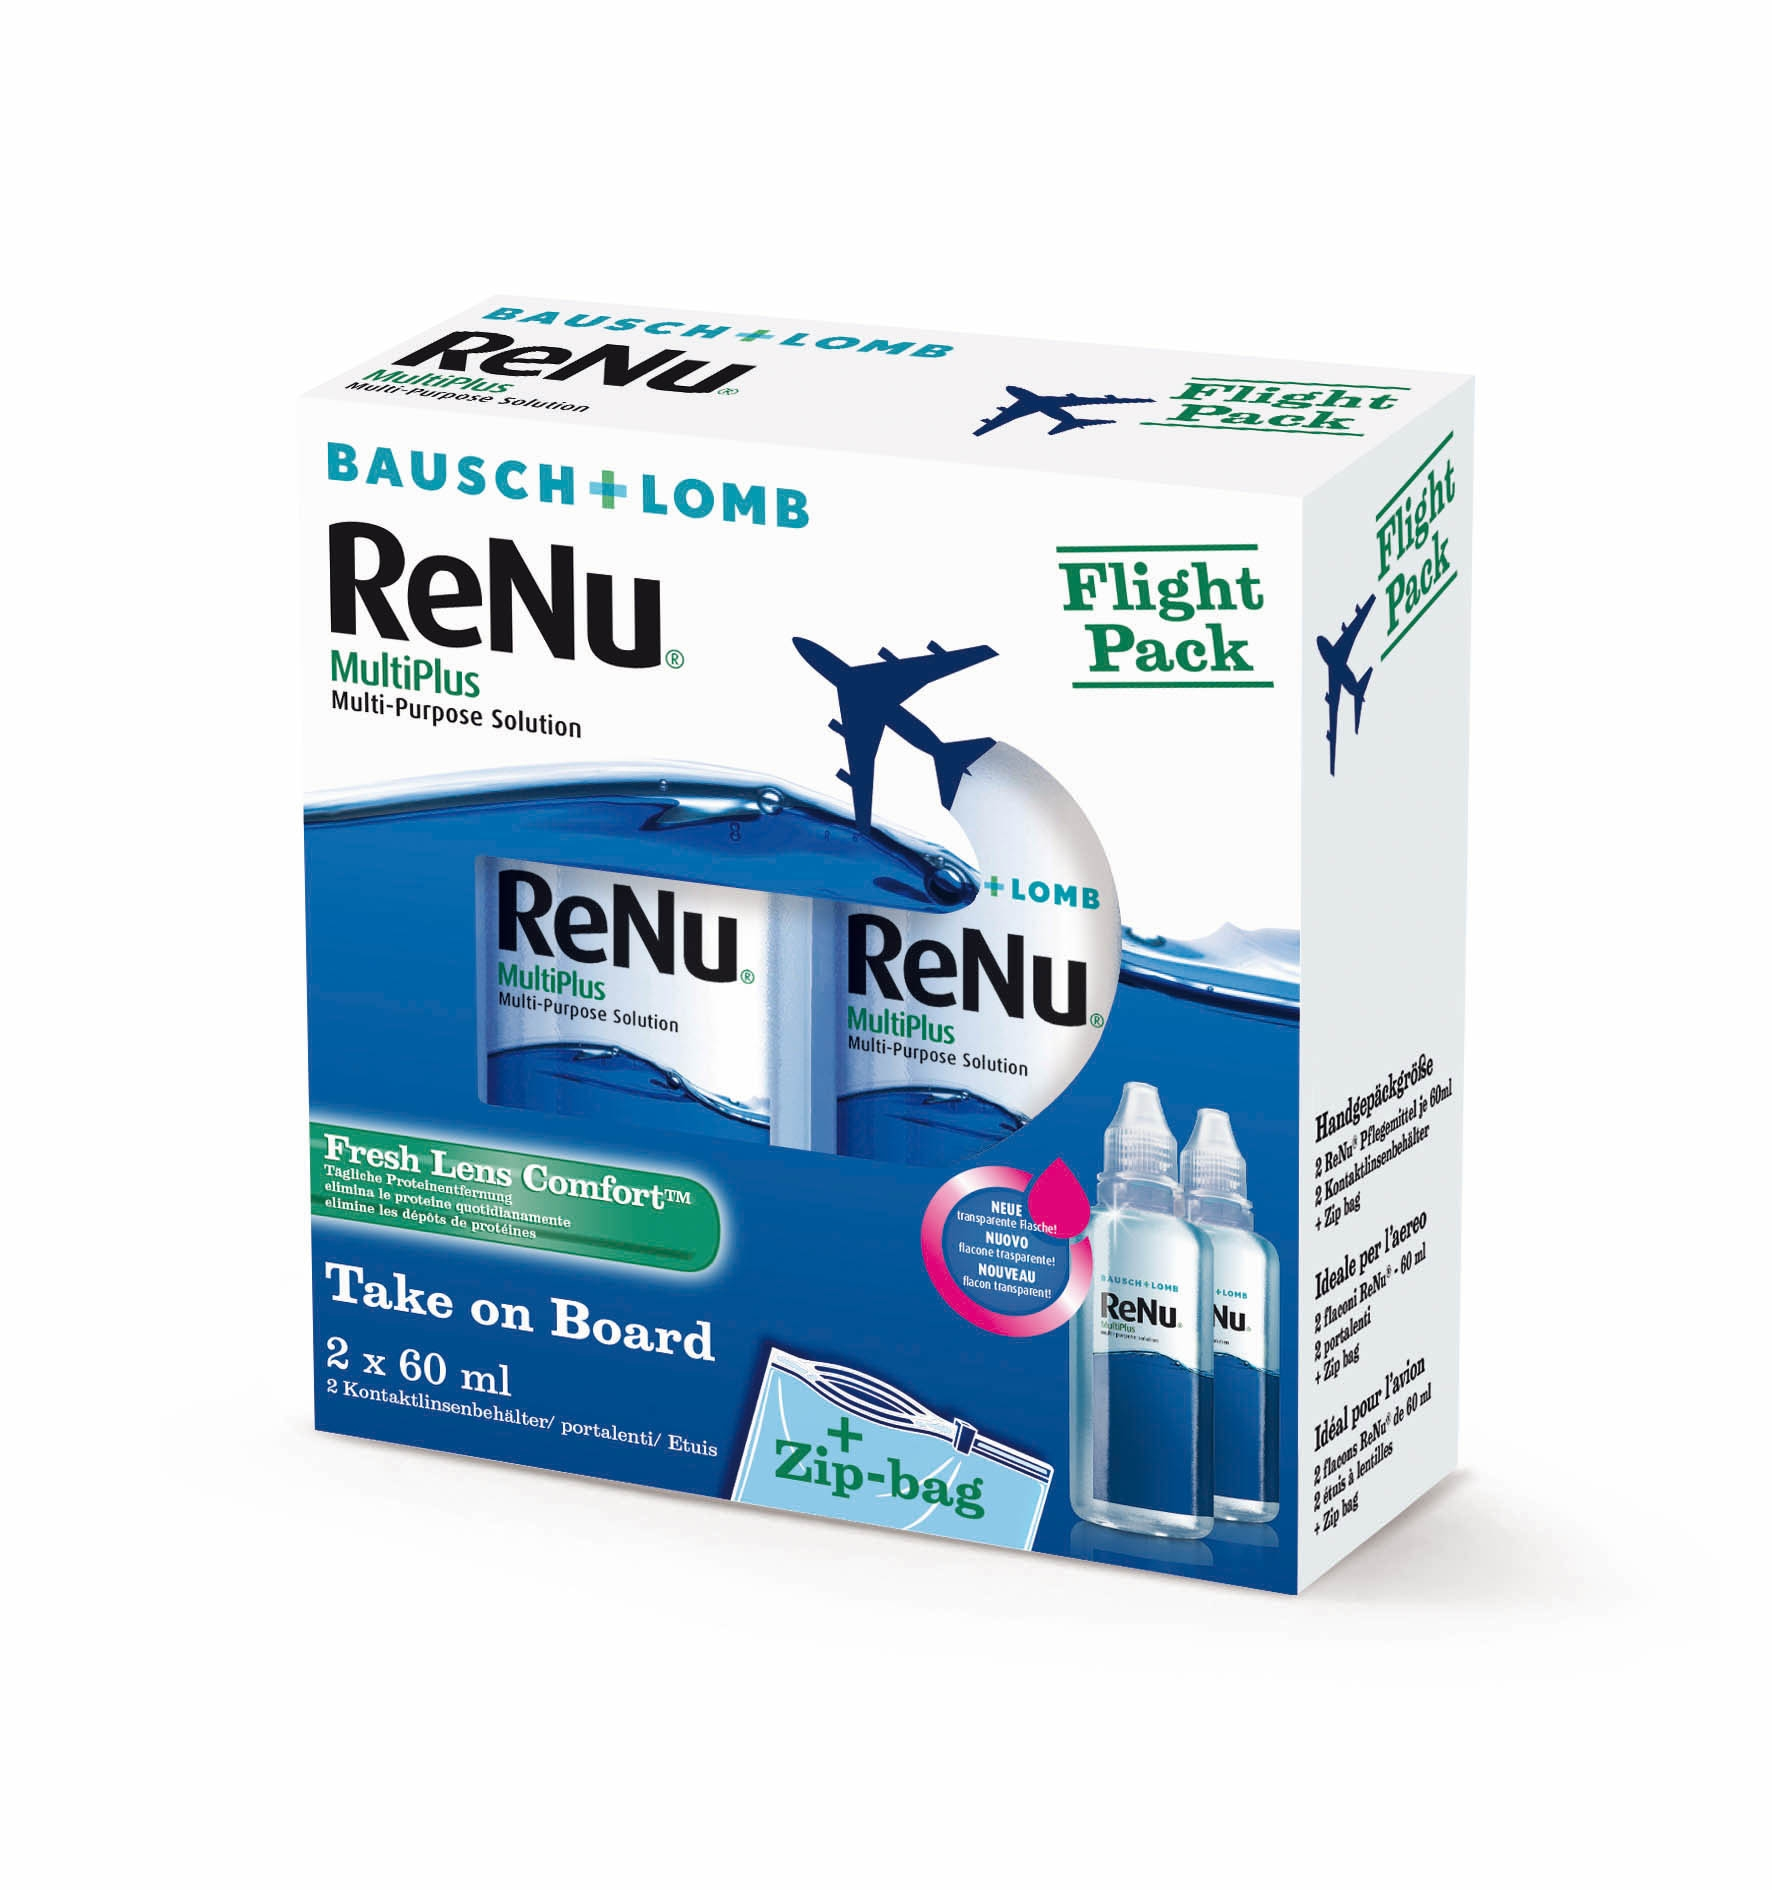 ReNu Multiplus Fresh Lens Comfort Flight Pack, Bausch & Lomb (2 x 60 ml)